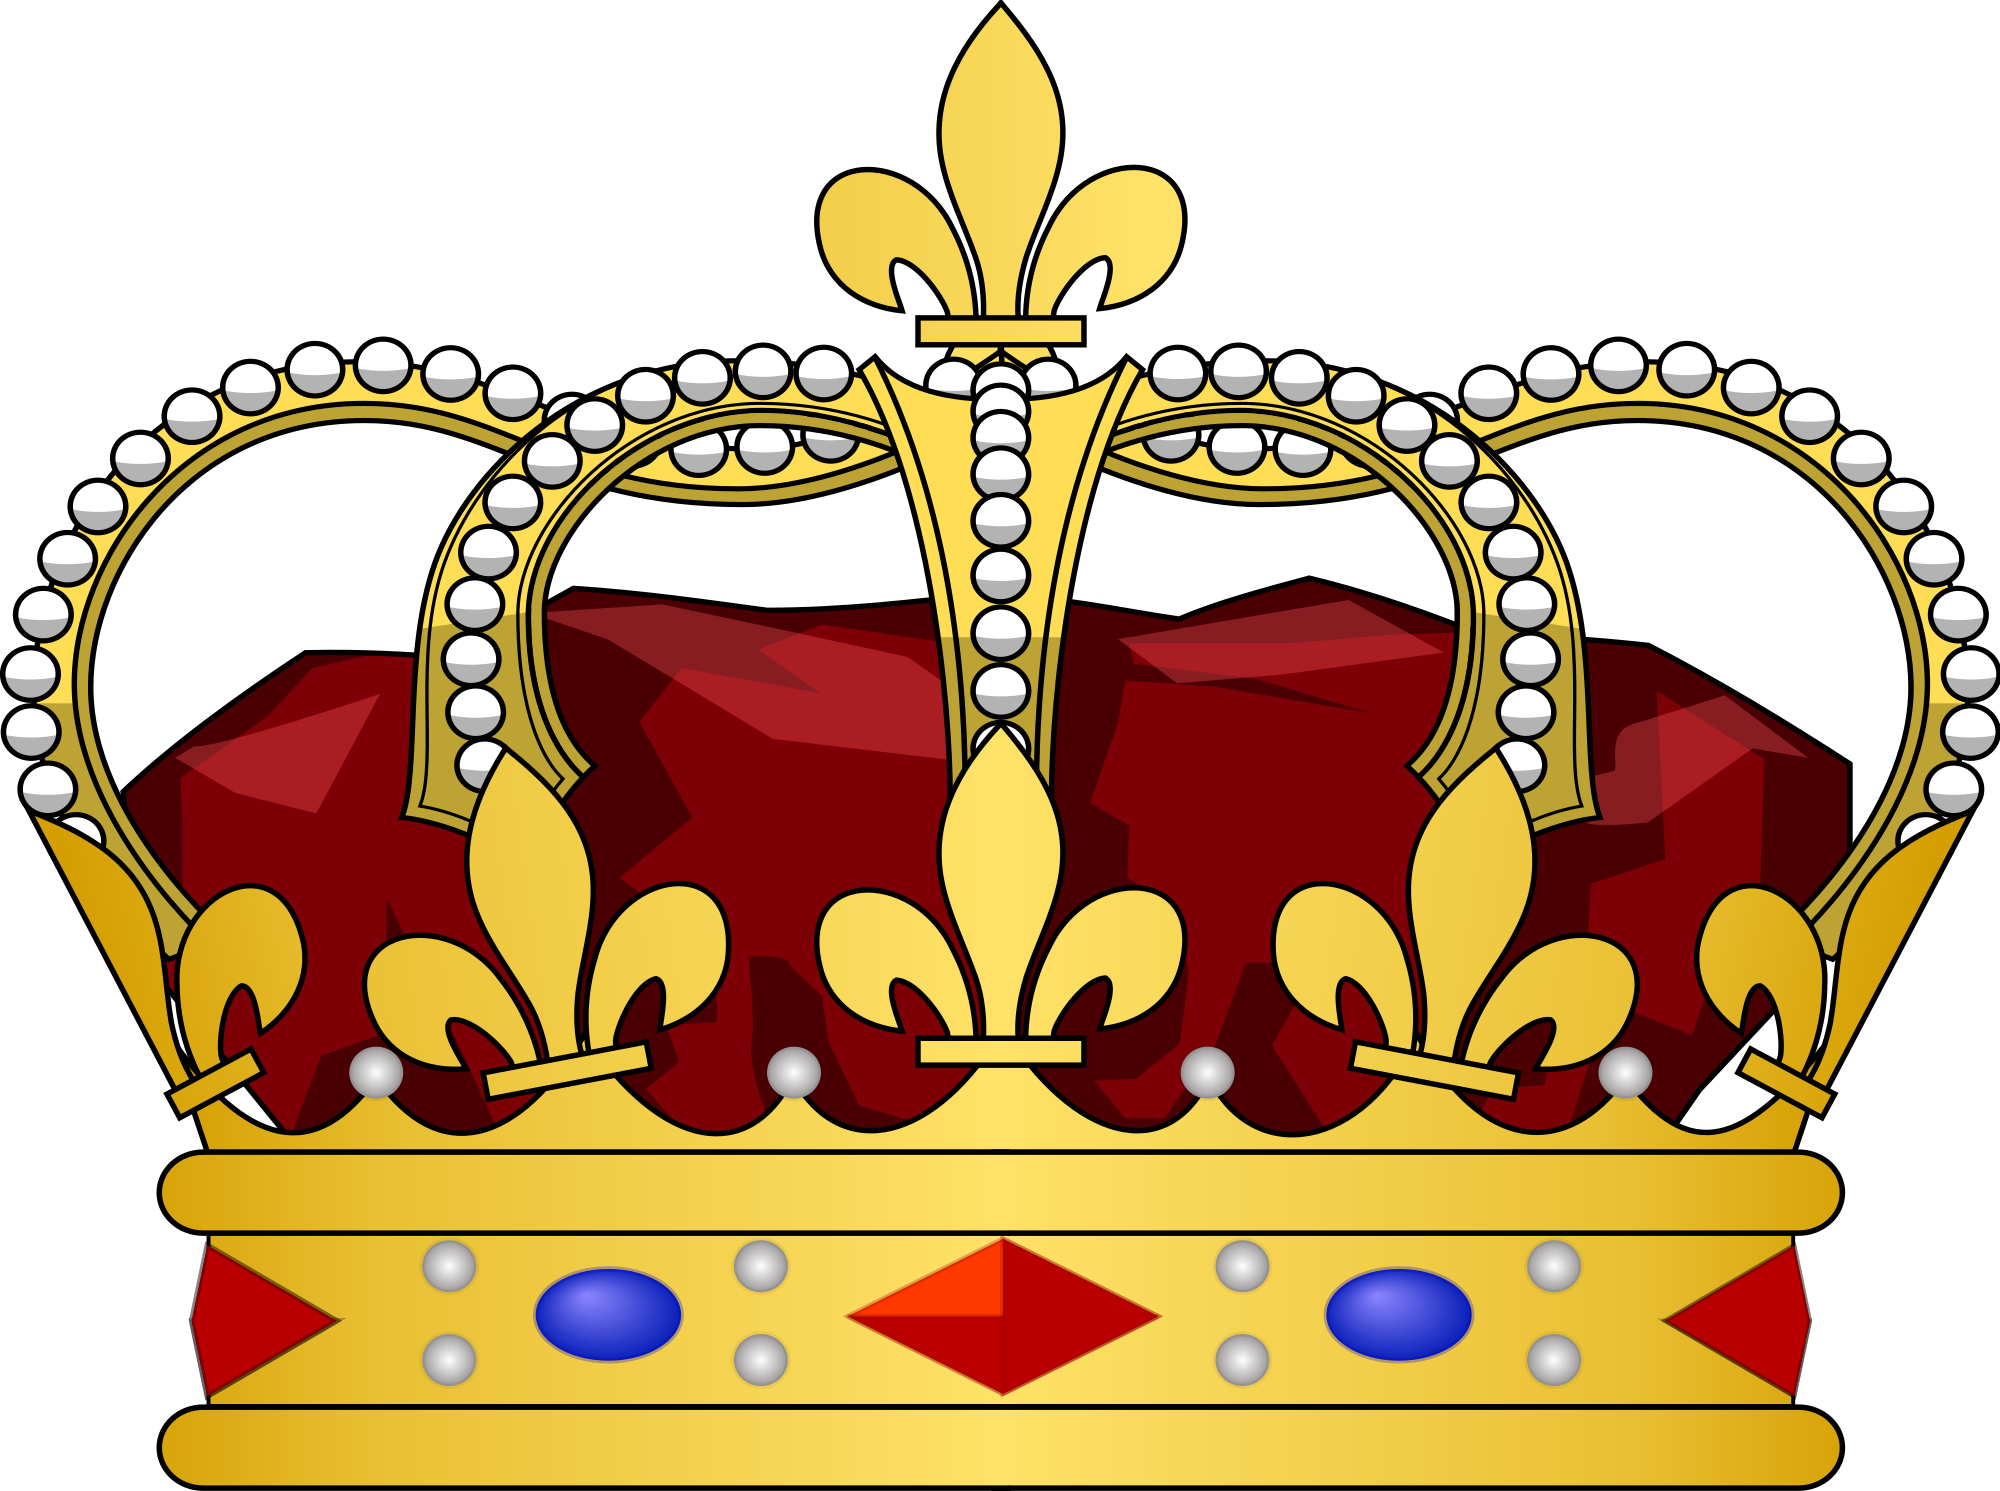 Crown clip royalty free. File french heraldic crowns